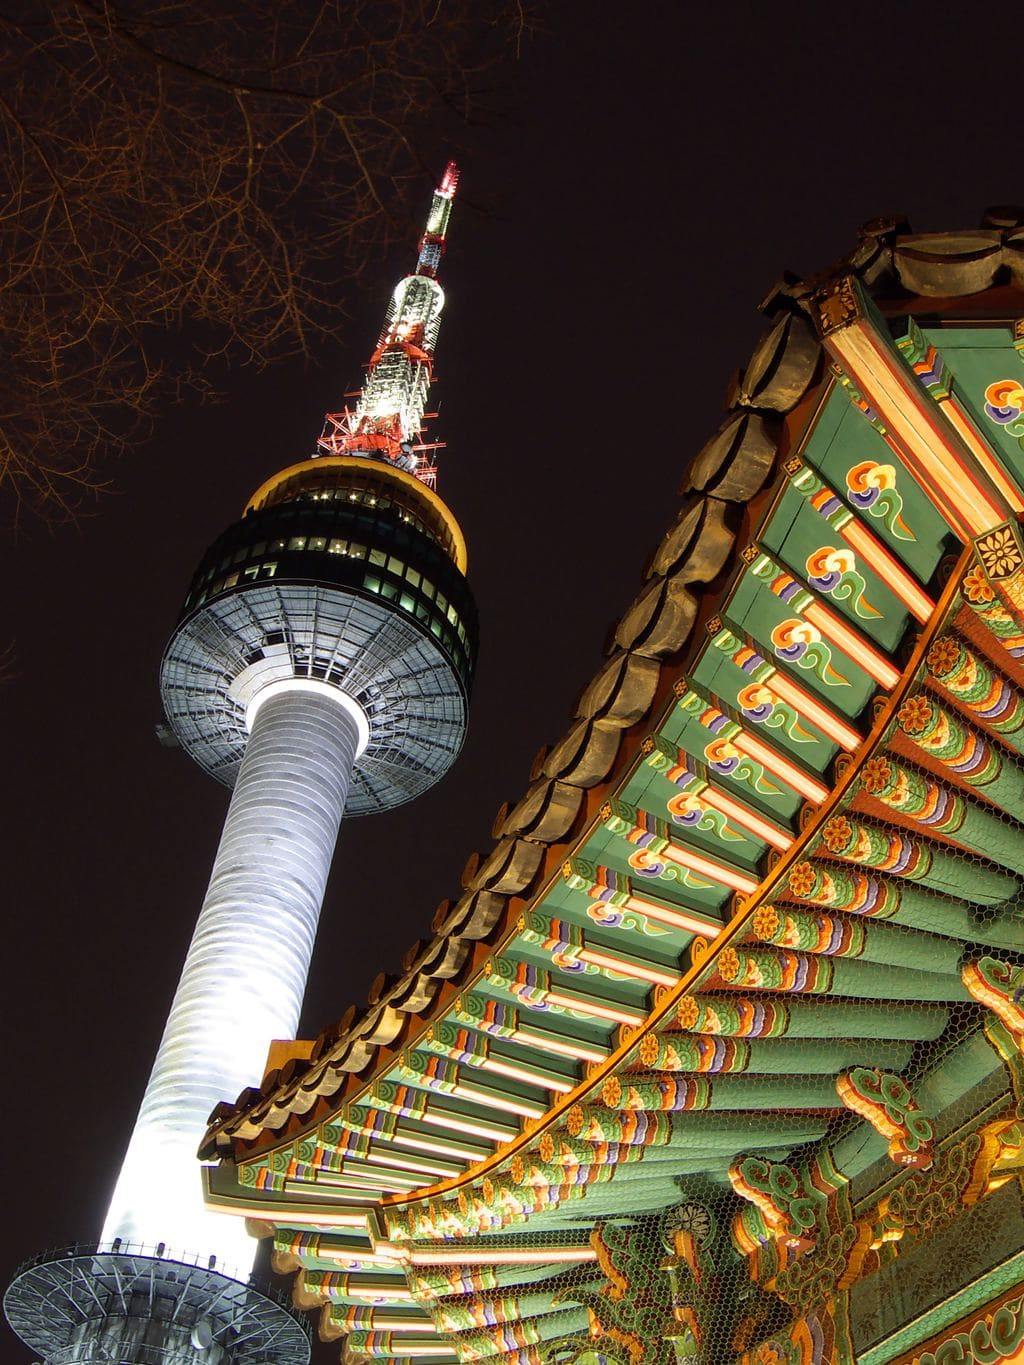 N Seoul Tower at night